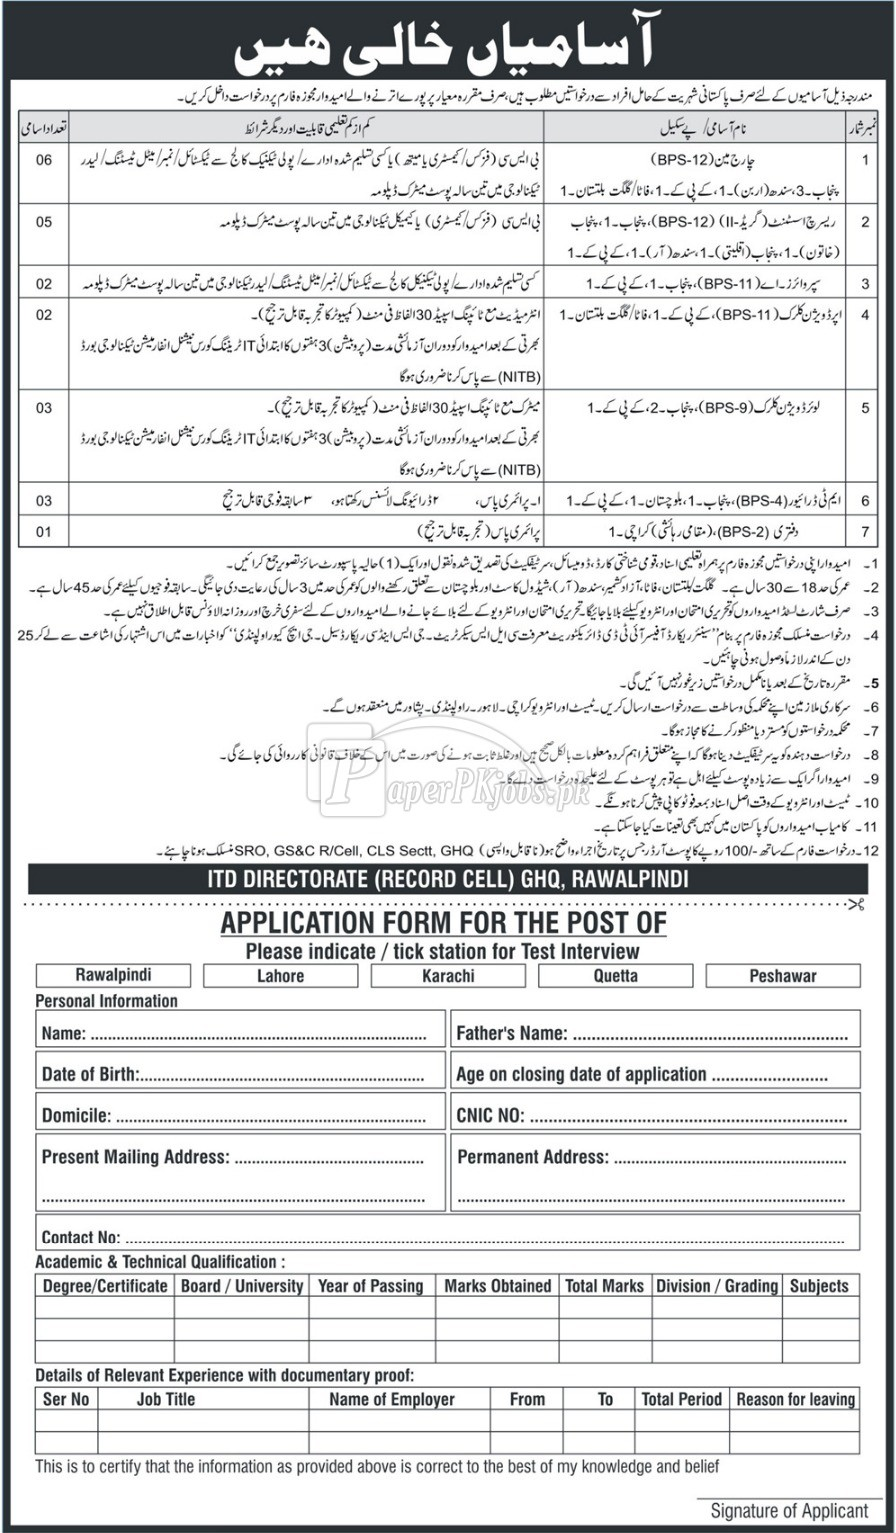 ITD Directorate Record Cell GHQ Rawalpindi Jobs 2018